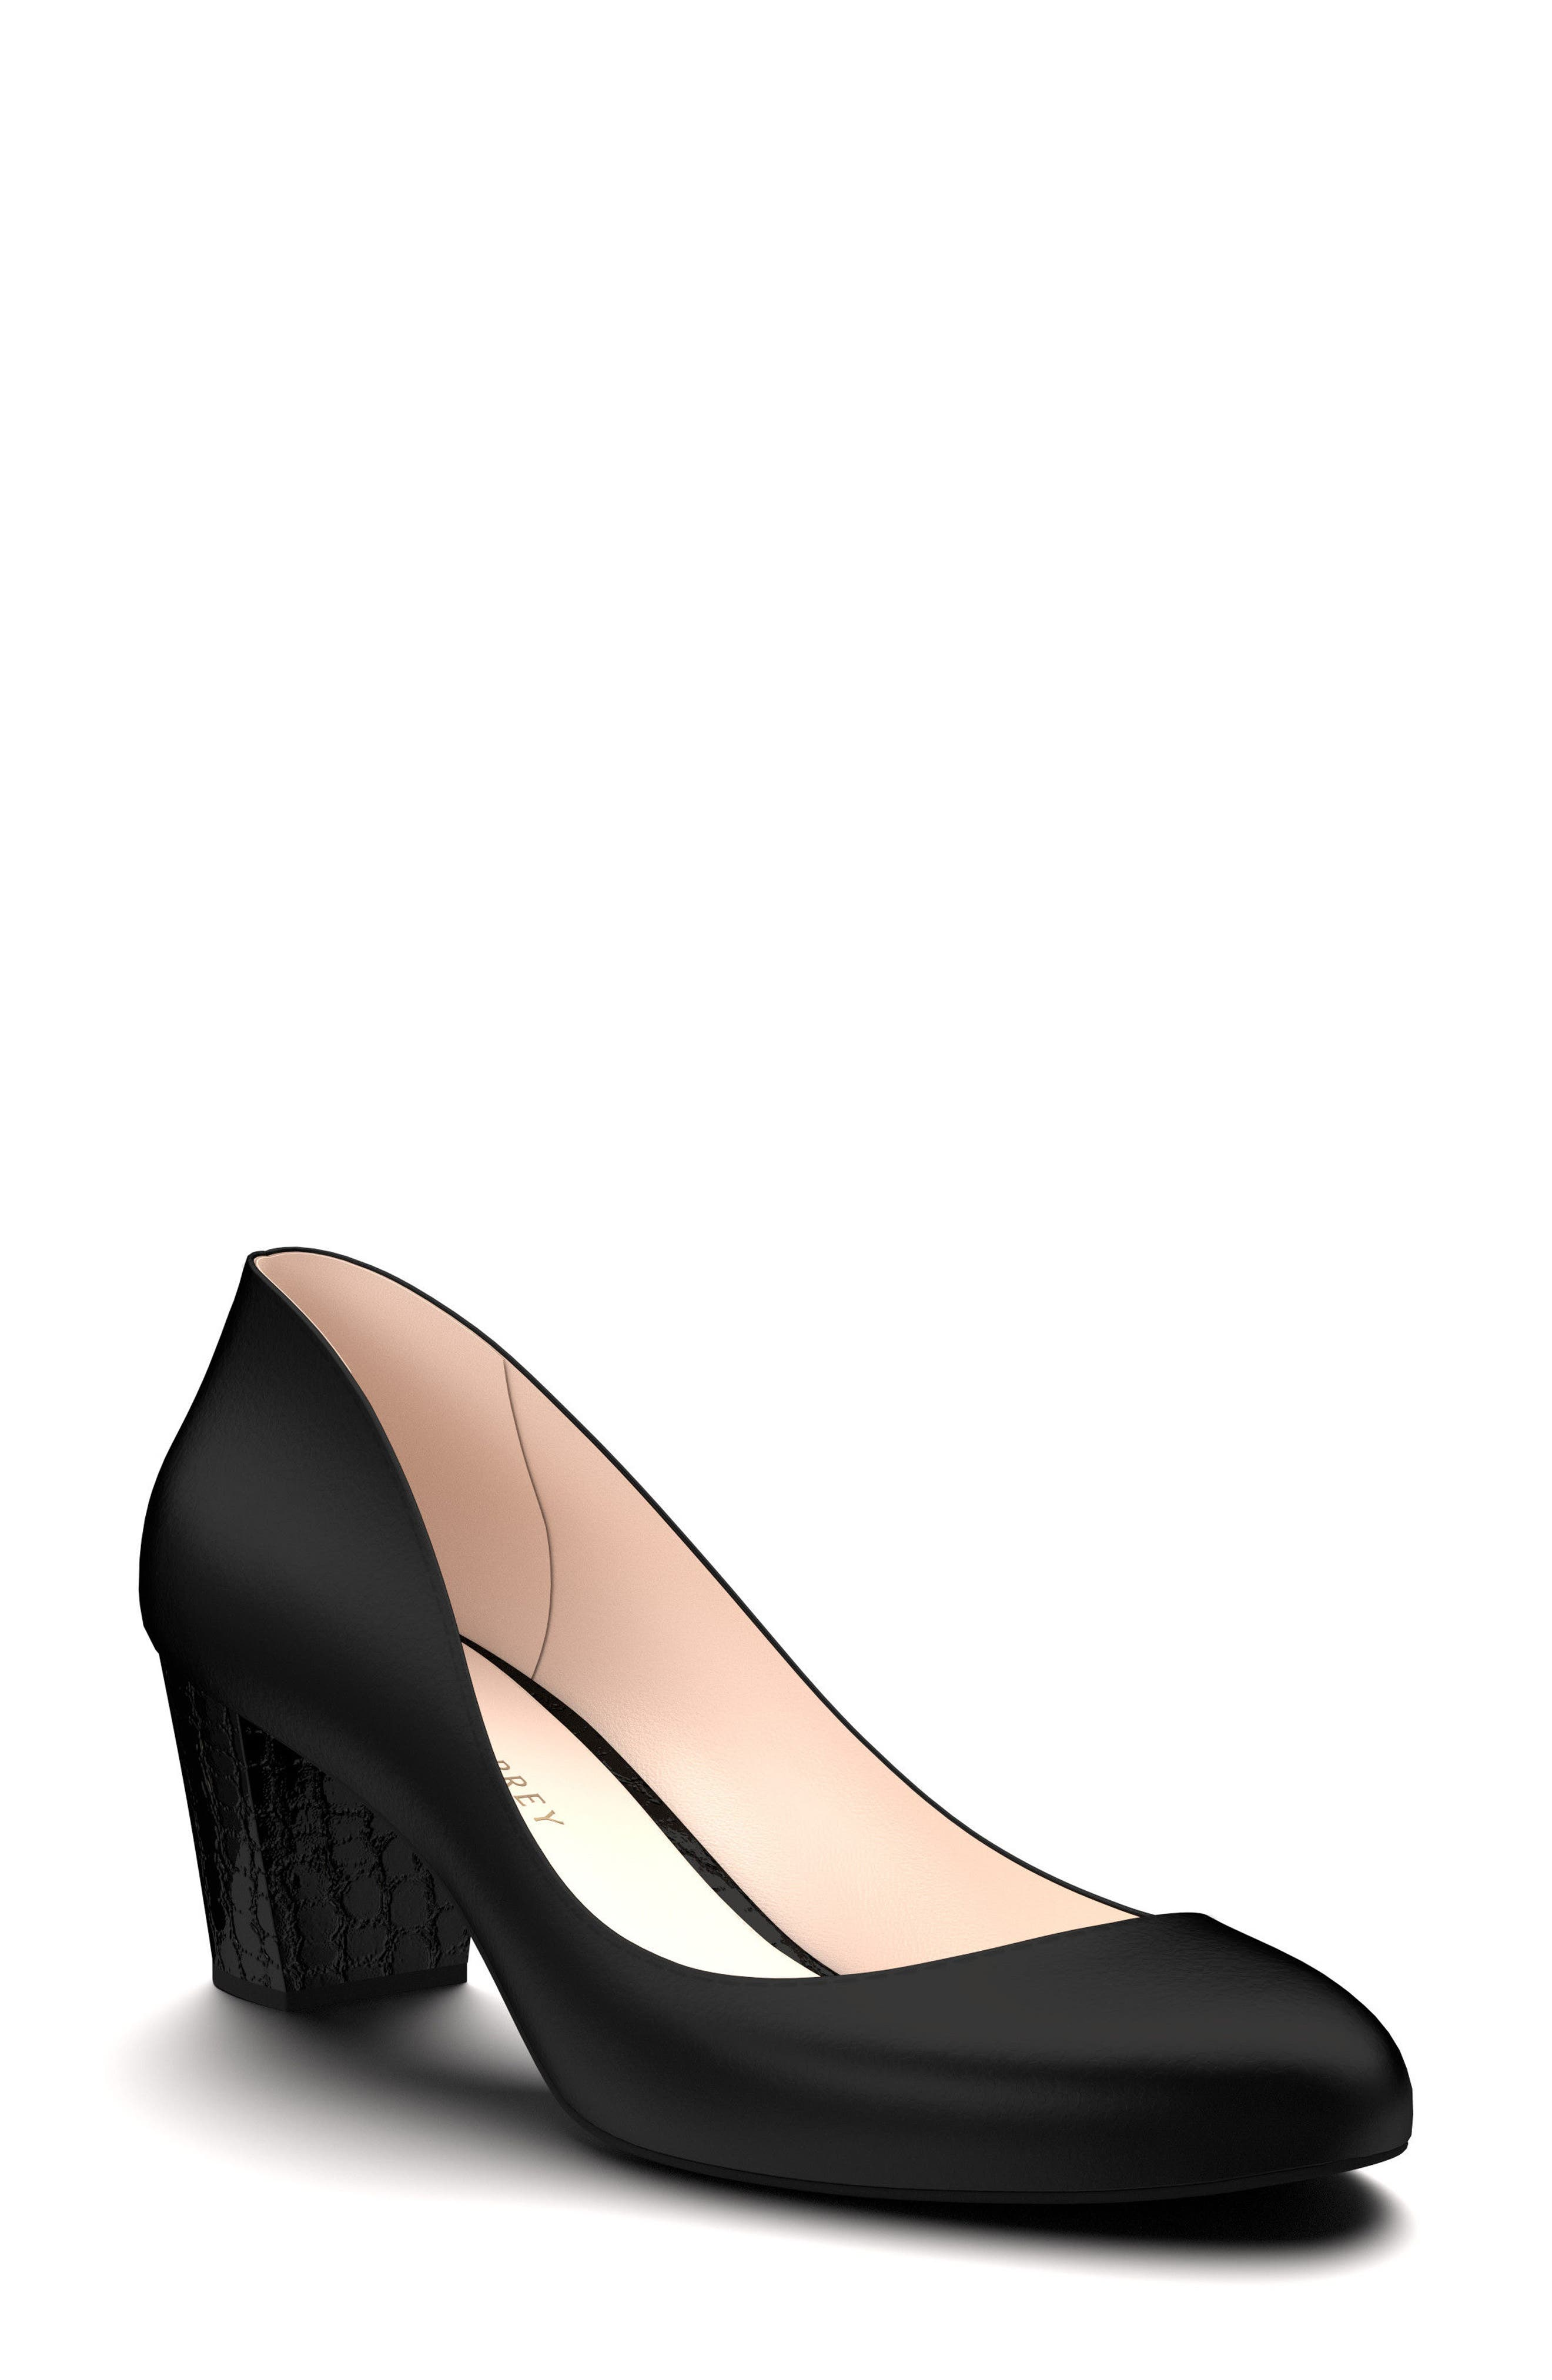 Shoes of Prey Block Heel Pump (Women)